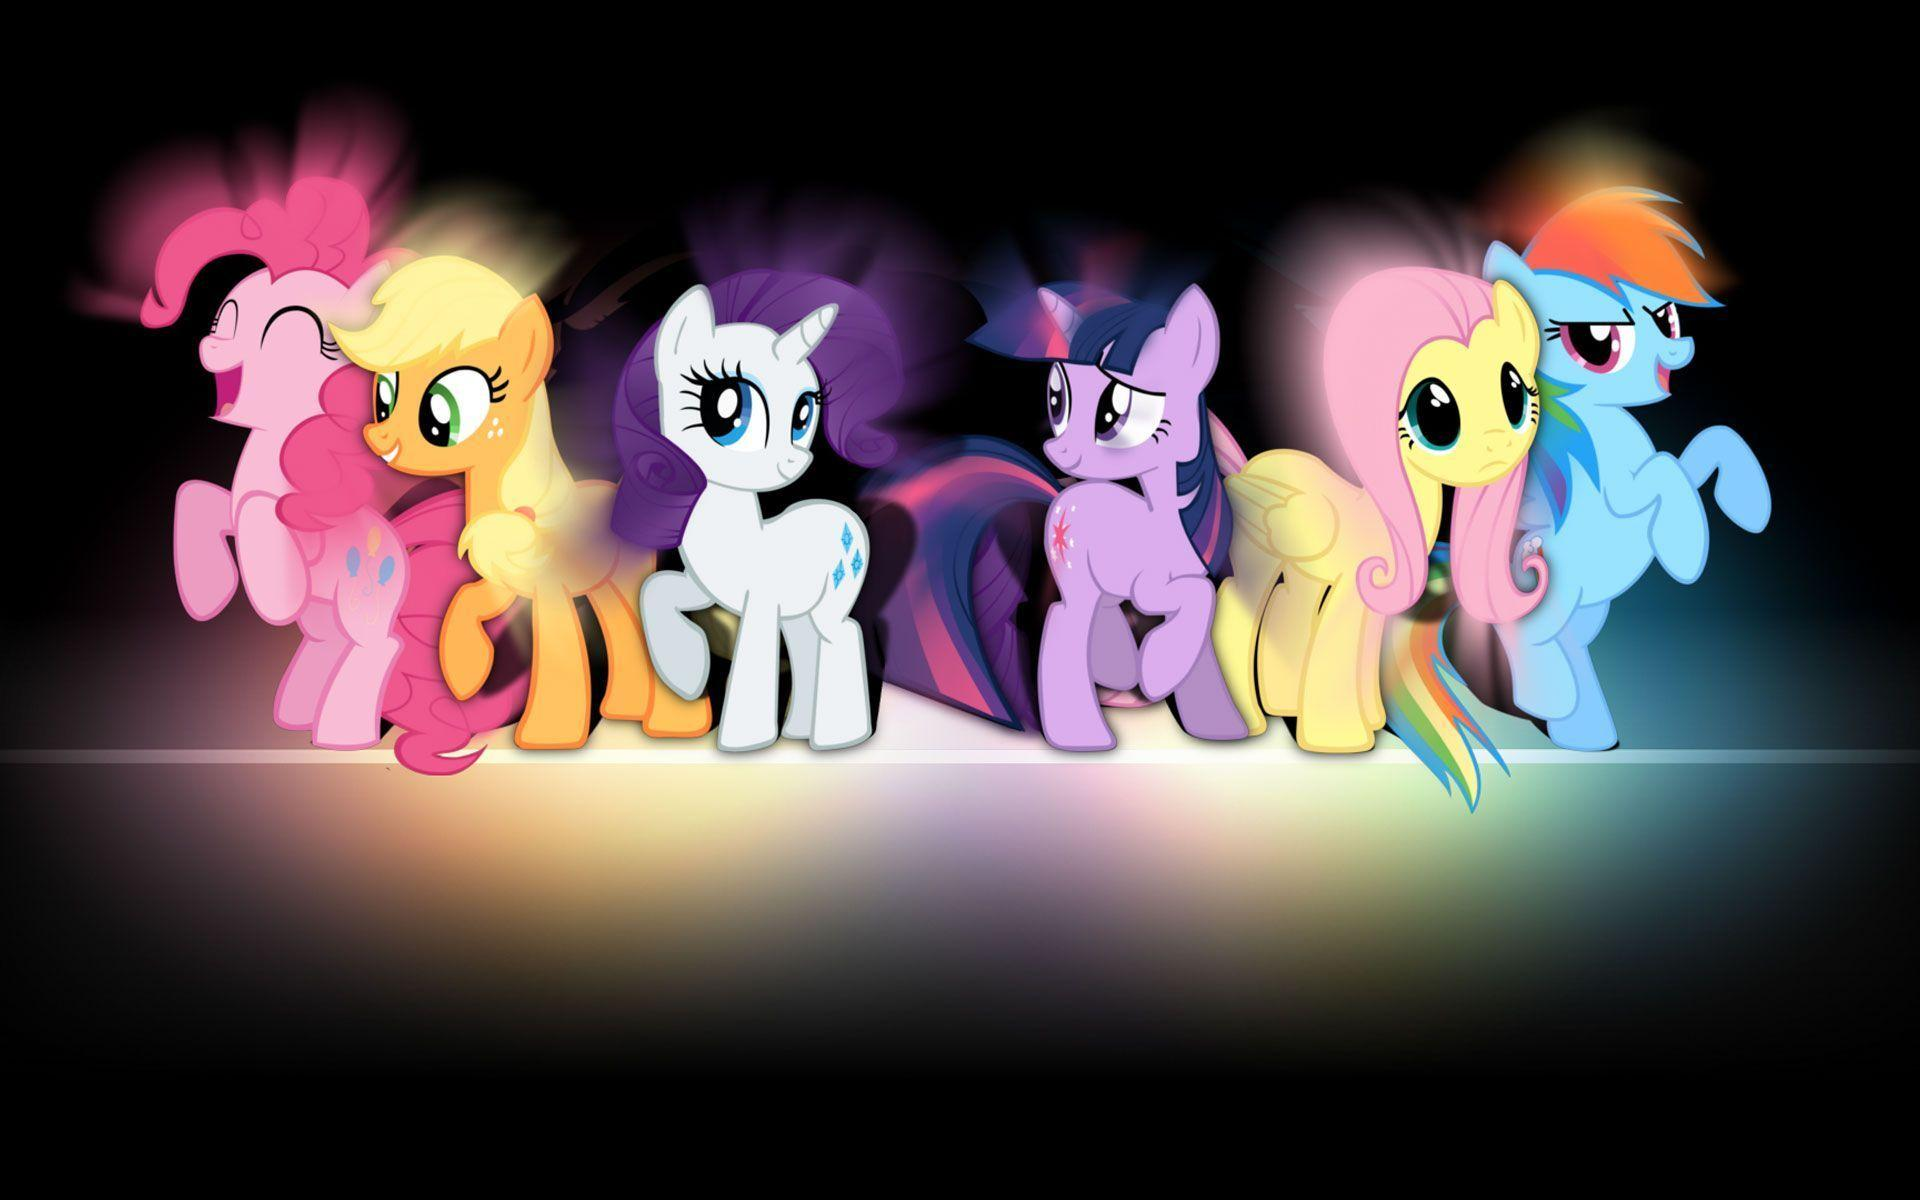 Free My Little Pony Wallpapers 21426 1920x1200 px